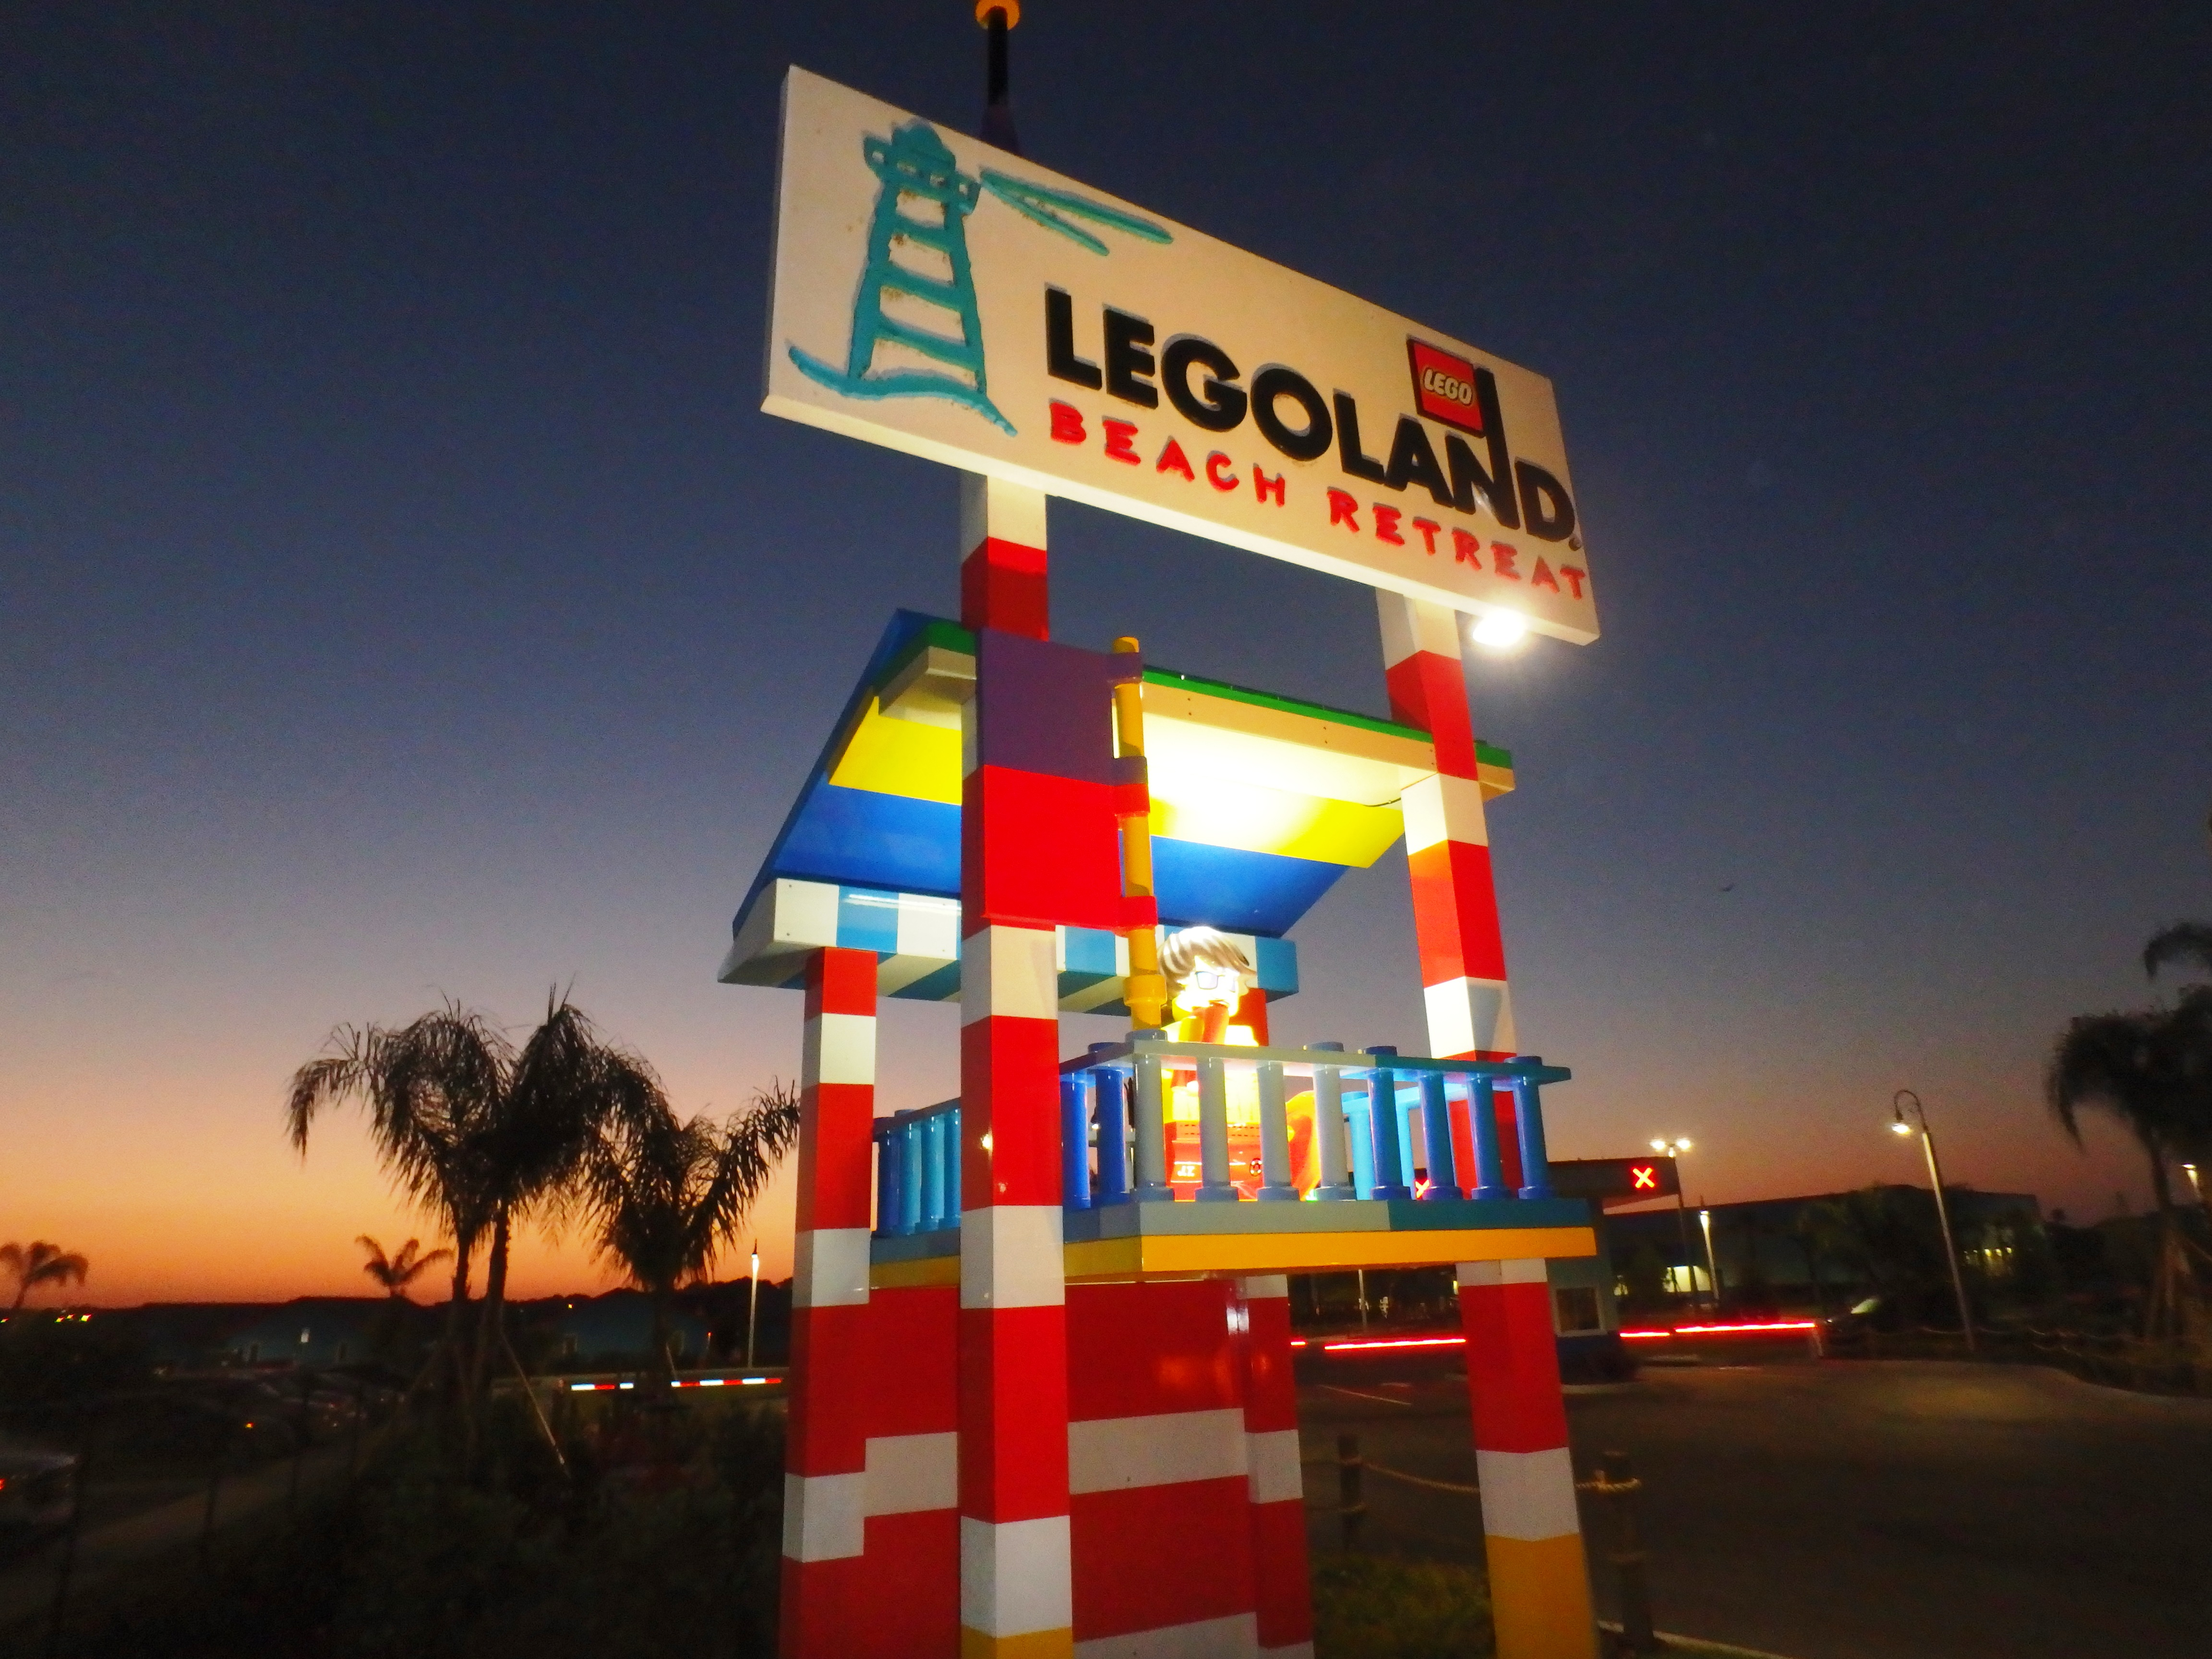 LEGOLAND Beach Retreat outdoor sign photo